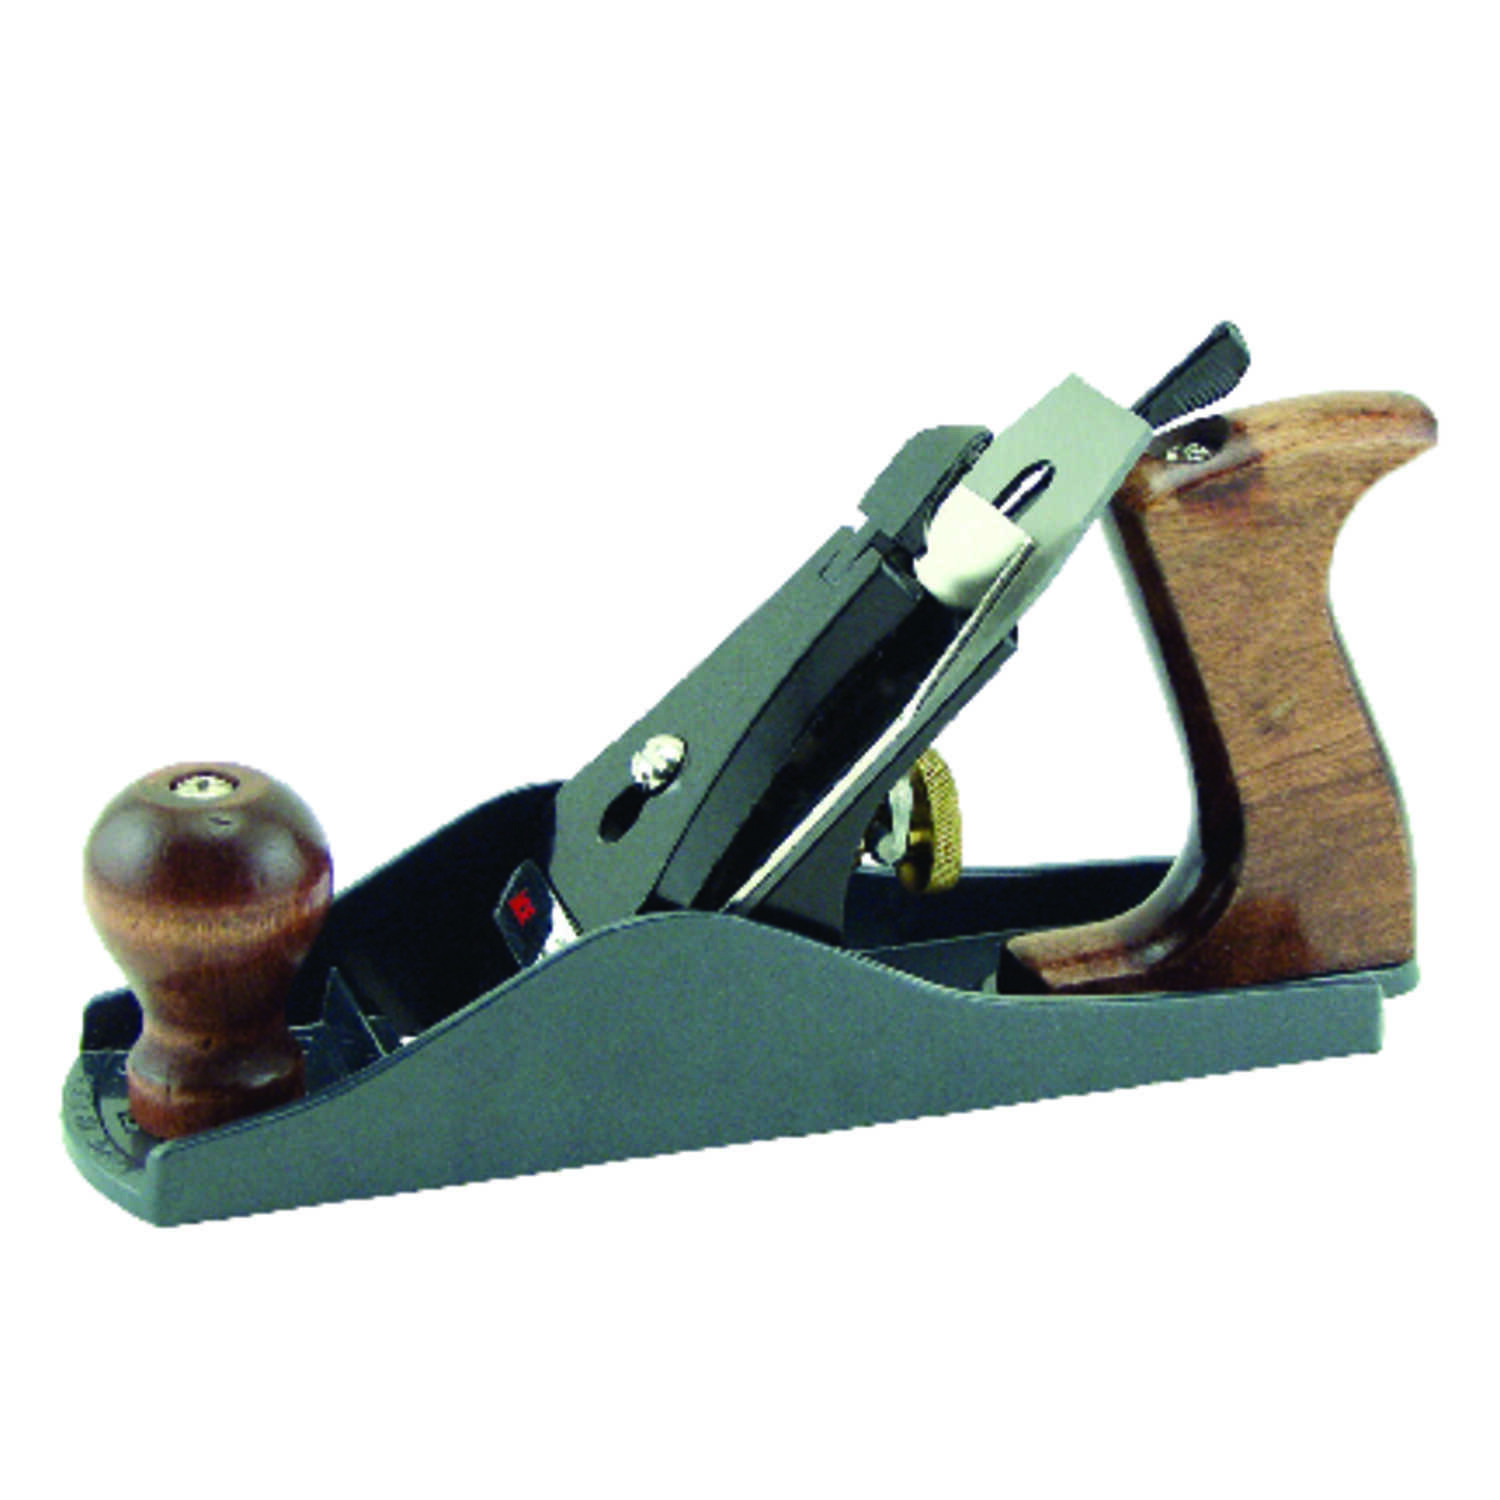 Ace  9 in. L x 2 in. W Bench Plane  Forged Carbide Steel